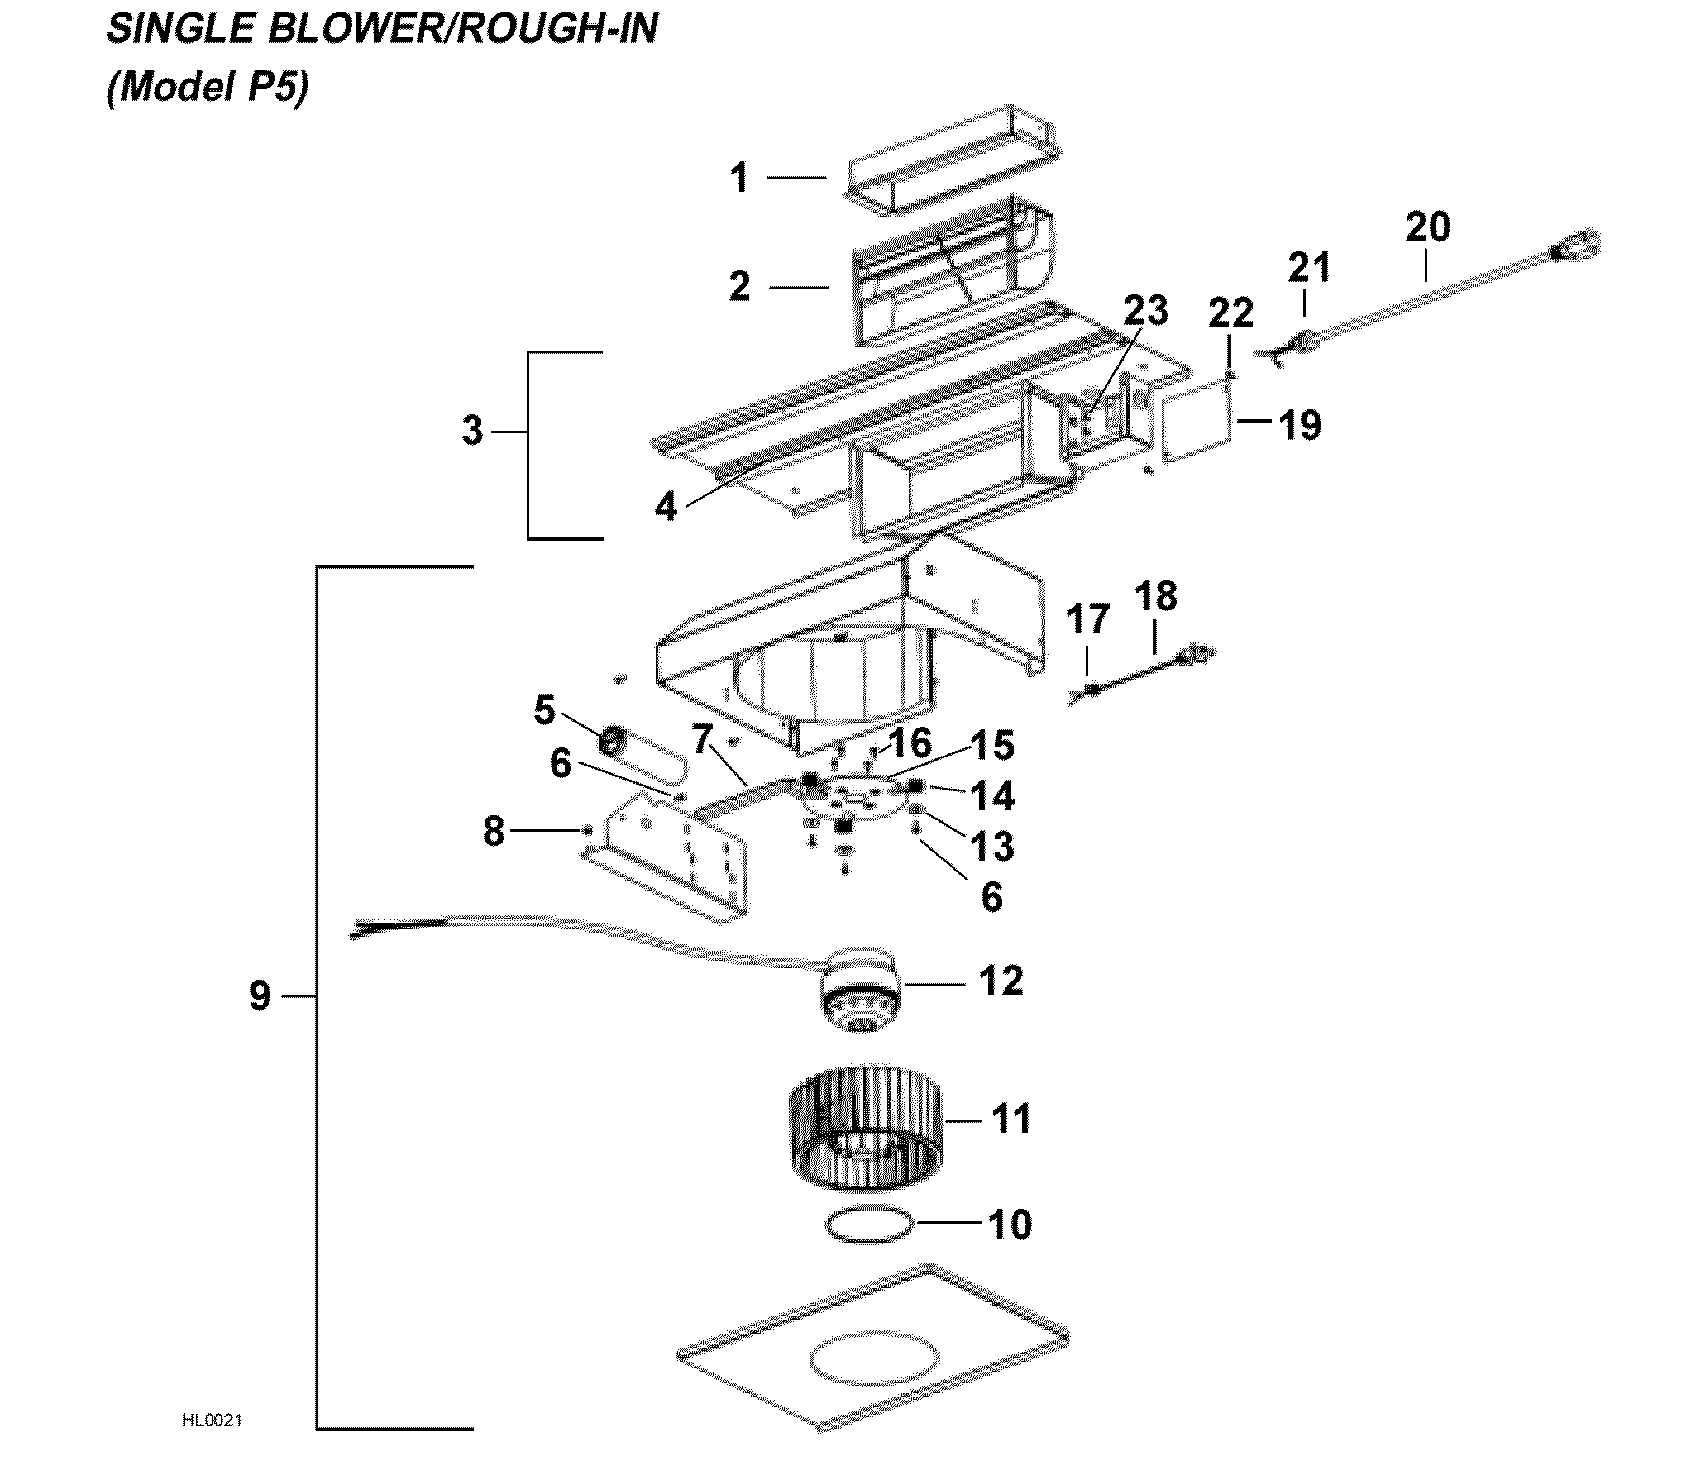 For A Bathroom Fan Broan 678 Wiring Diagram Bathroom